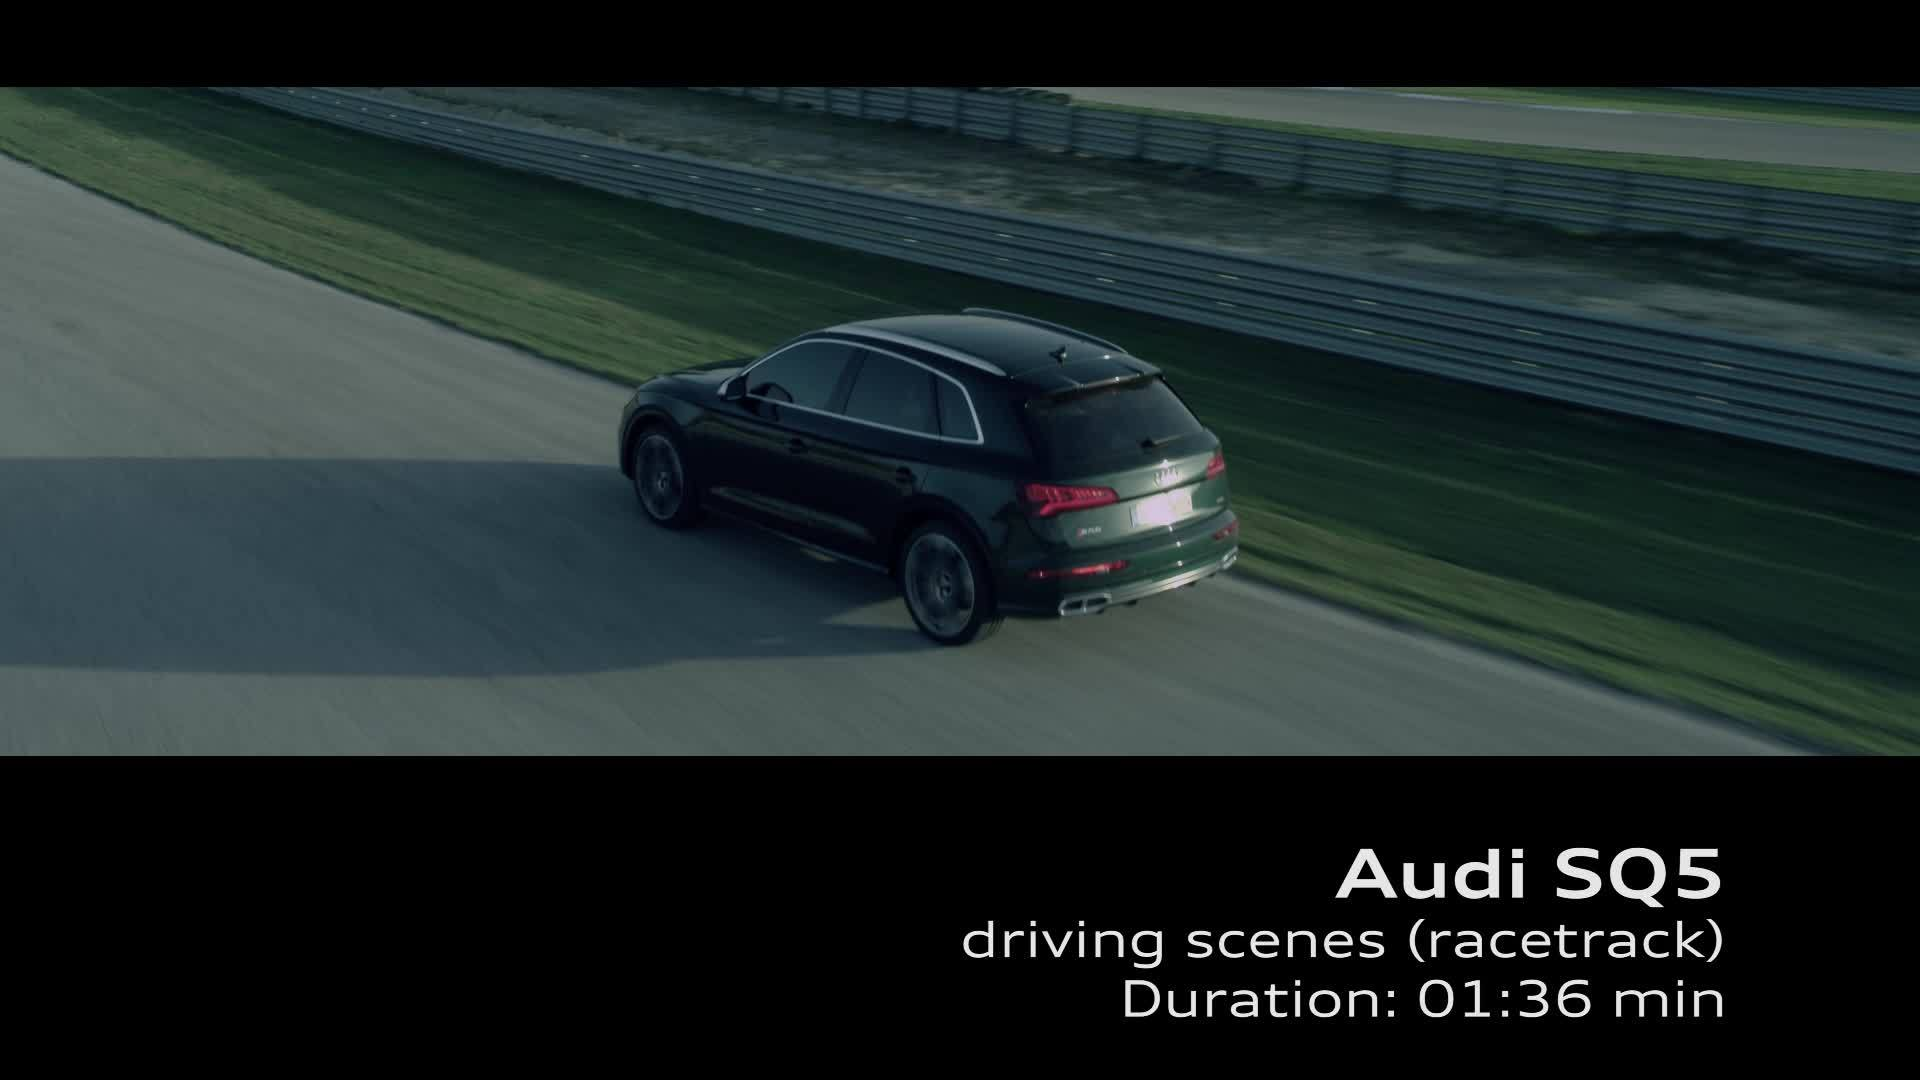 The Audi SQ5 - Footage